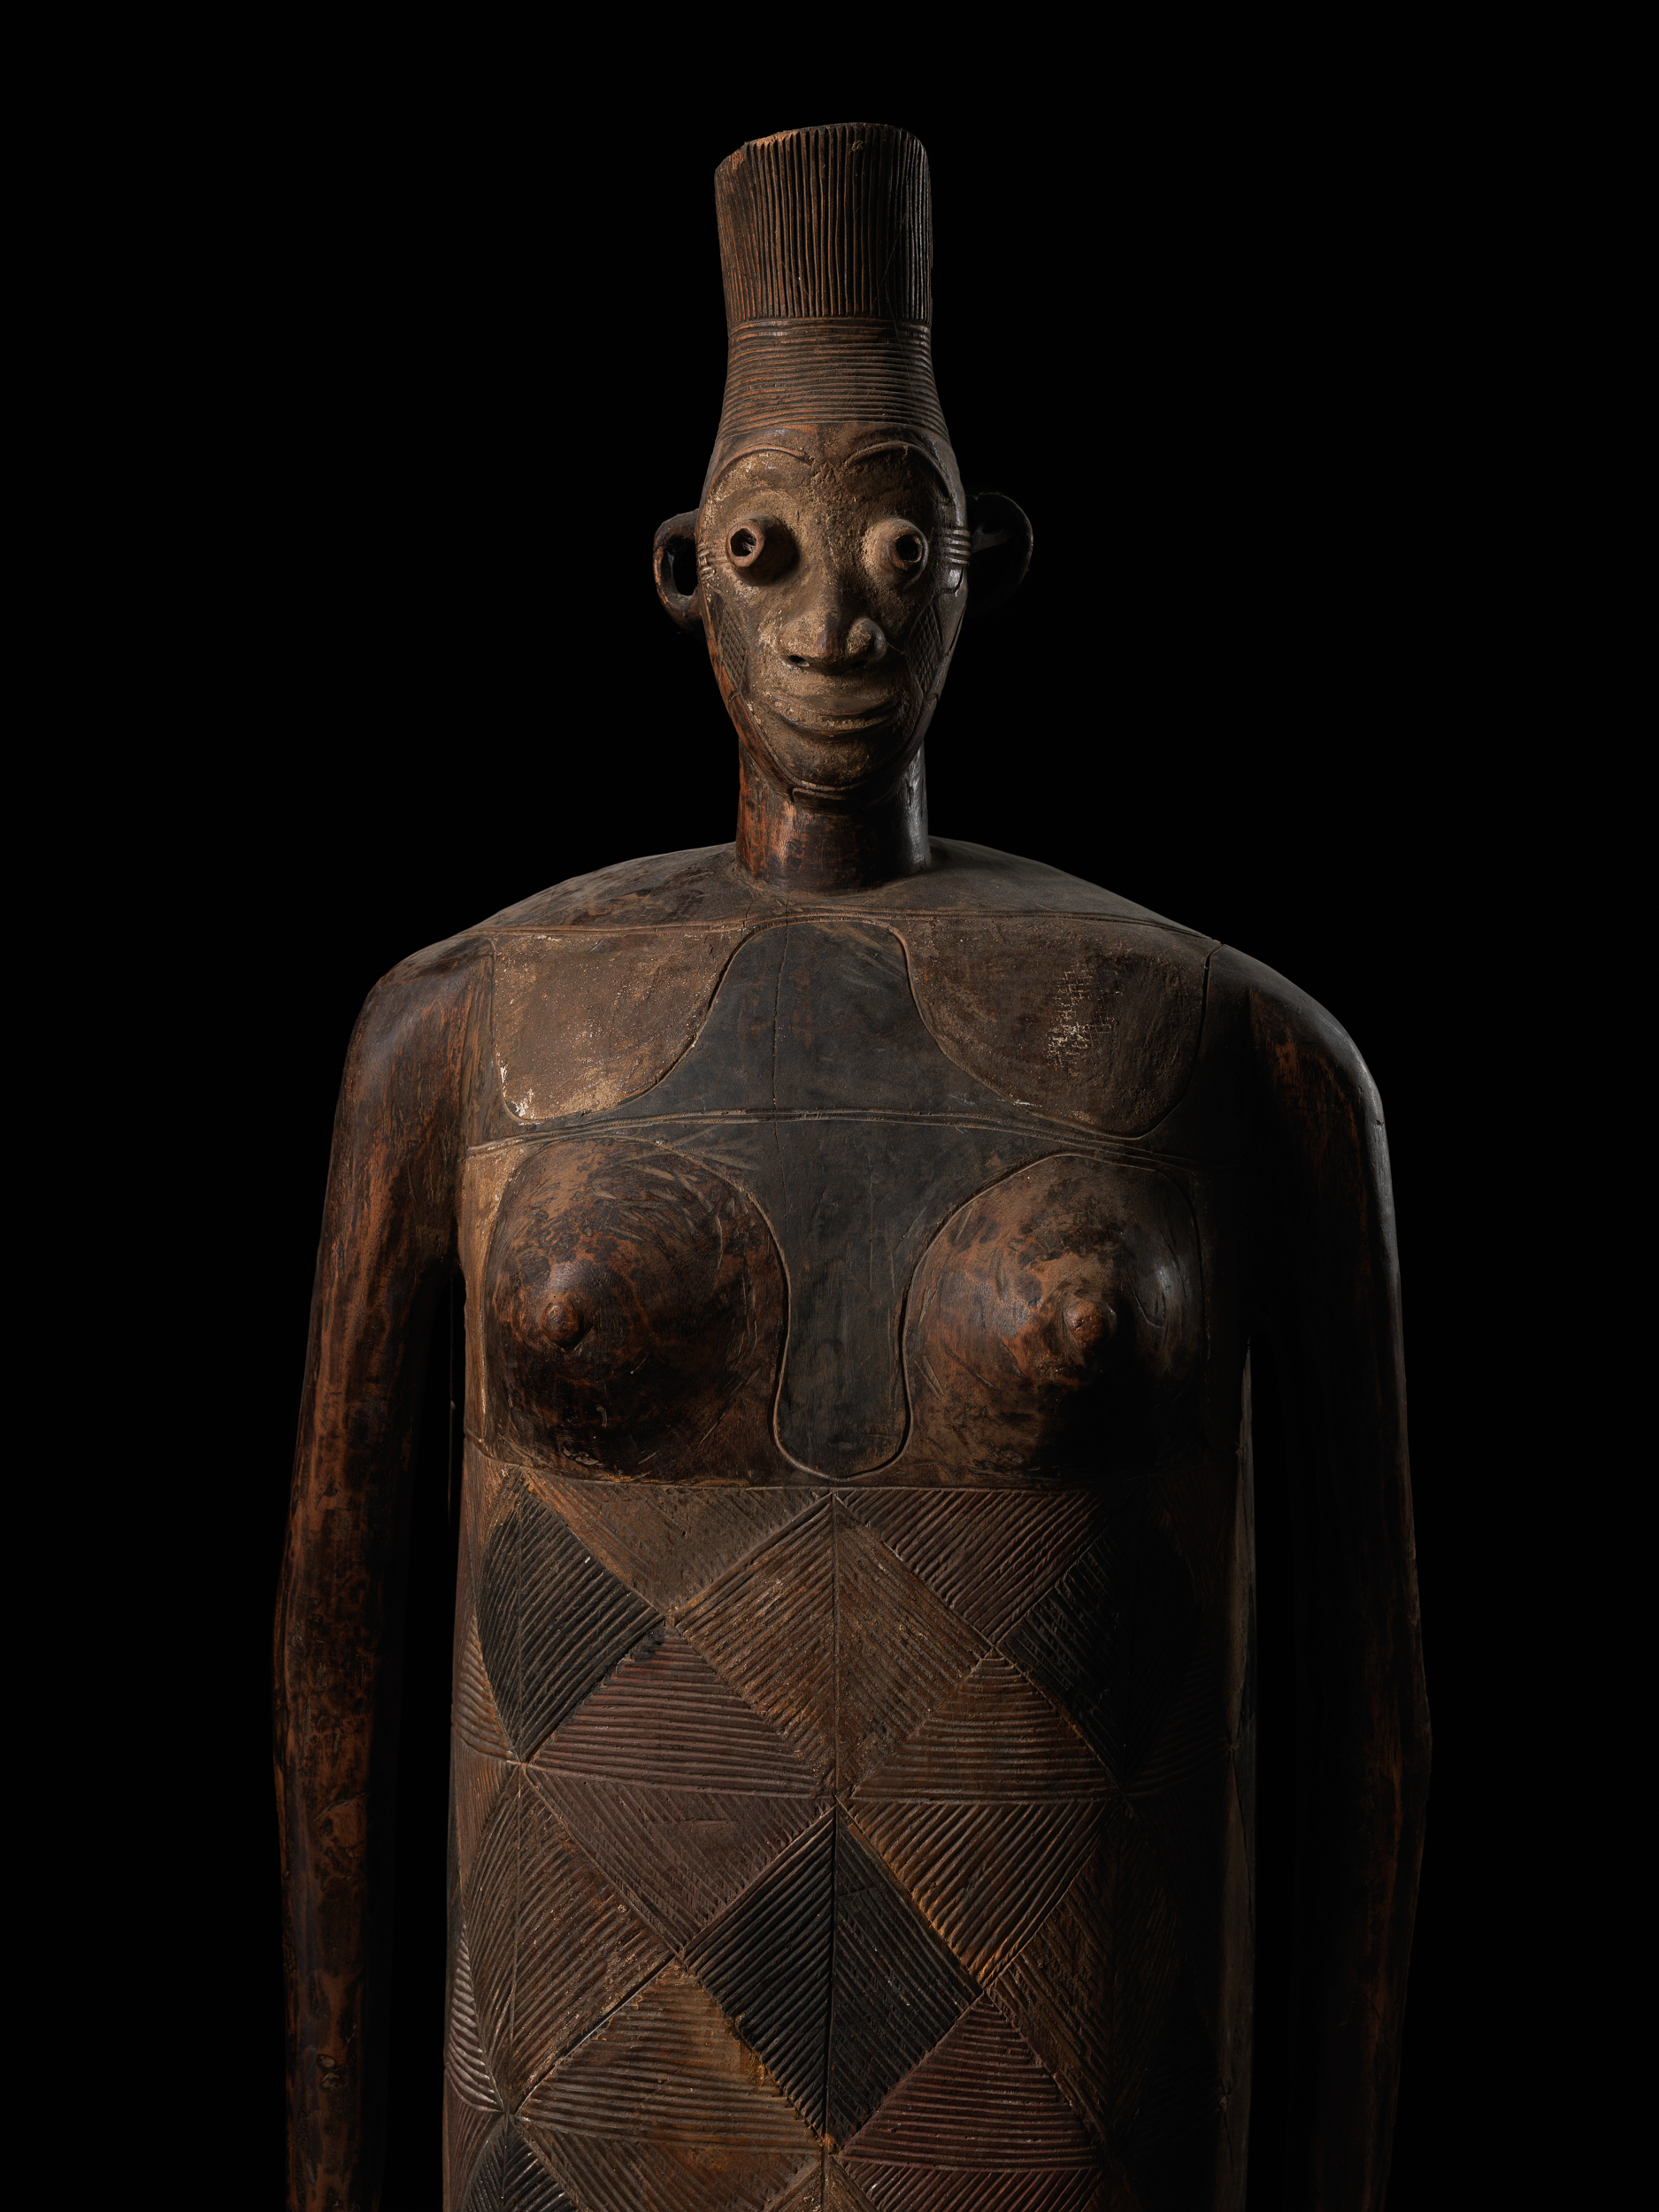 Anthropoid sarcophagi for a man and a woman North Eastern Democratic Republic of Congo, Mangbetu people, Eastern neighbours of the Ngata, 20th century  Carved and etched wood, natural polychrome pigments Ann Porteus, Sidewalk Gallery